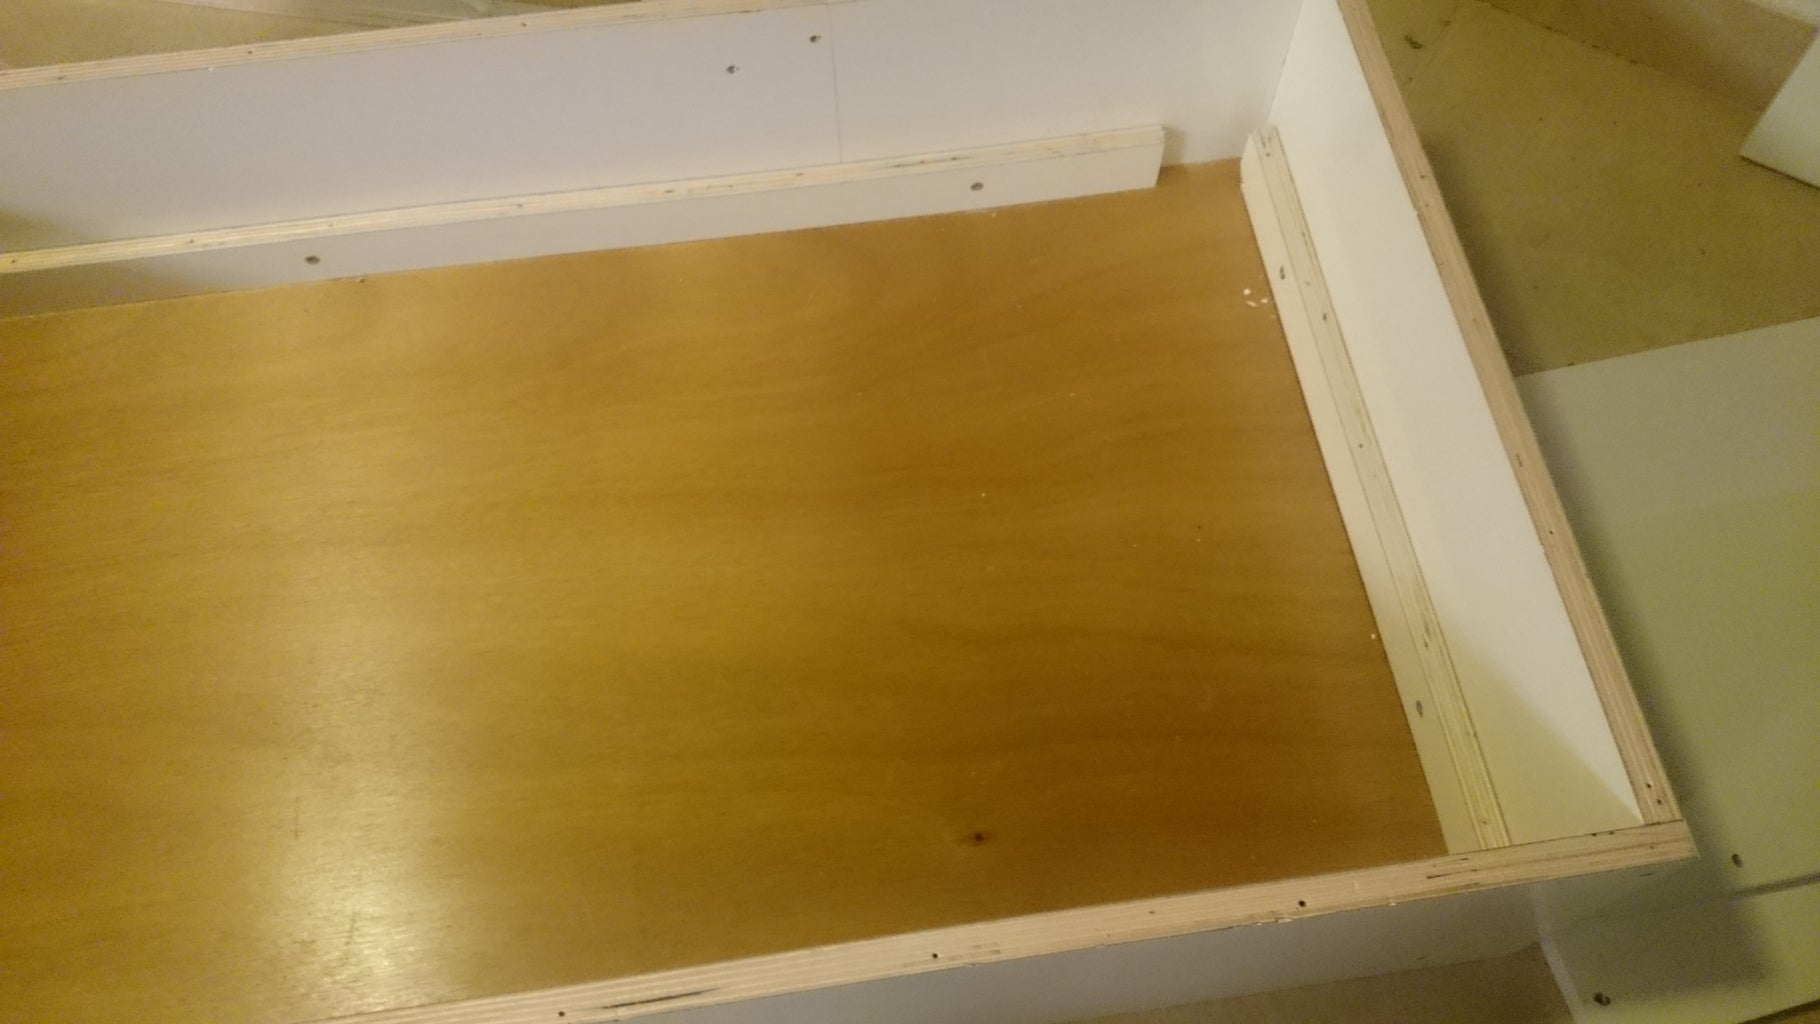 Making the Table Frame and Top Board